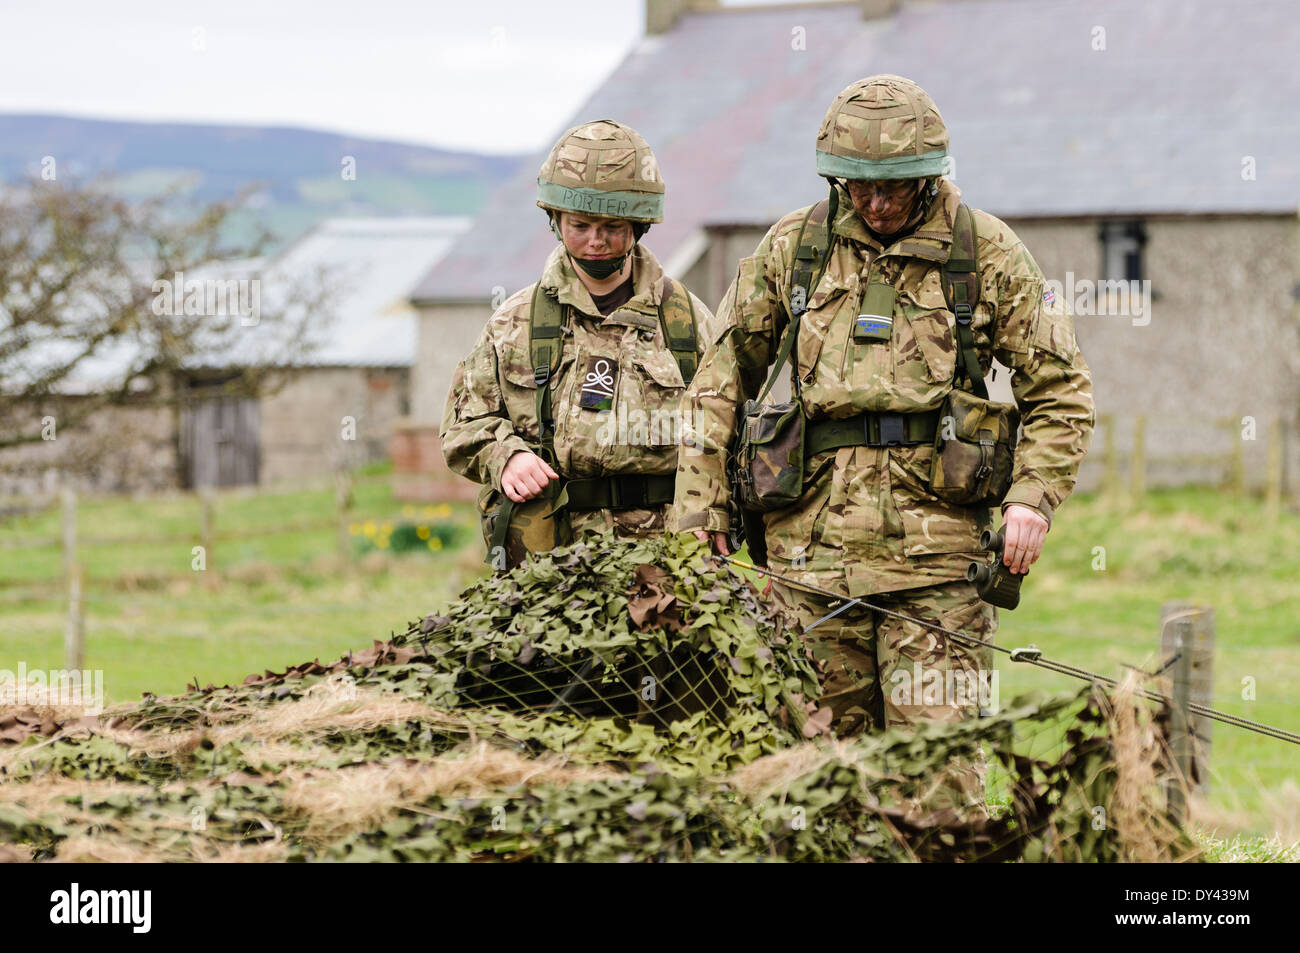 Soldiers enter a forward observation post in a rural location of Northern Ireland - Stock Image